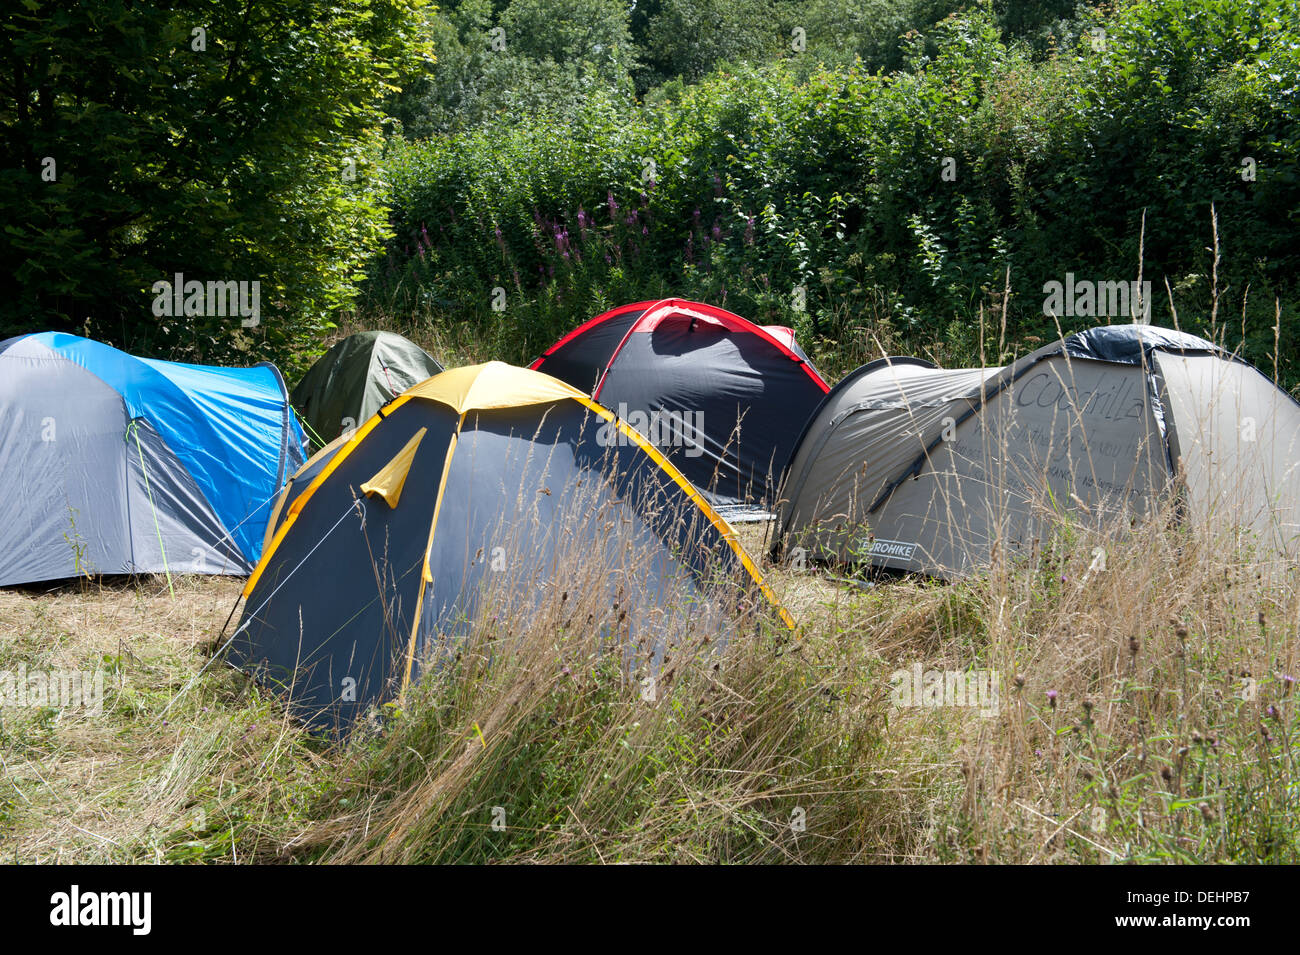 Part of a tented  village near Balcombe, UK set up by protesters at the Cuadrilla drilling site. - Stock Image